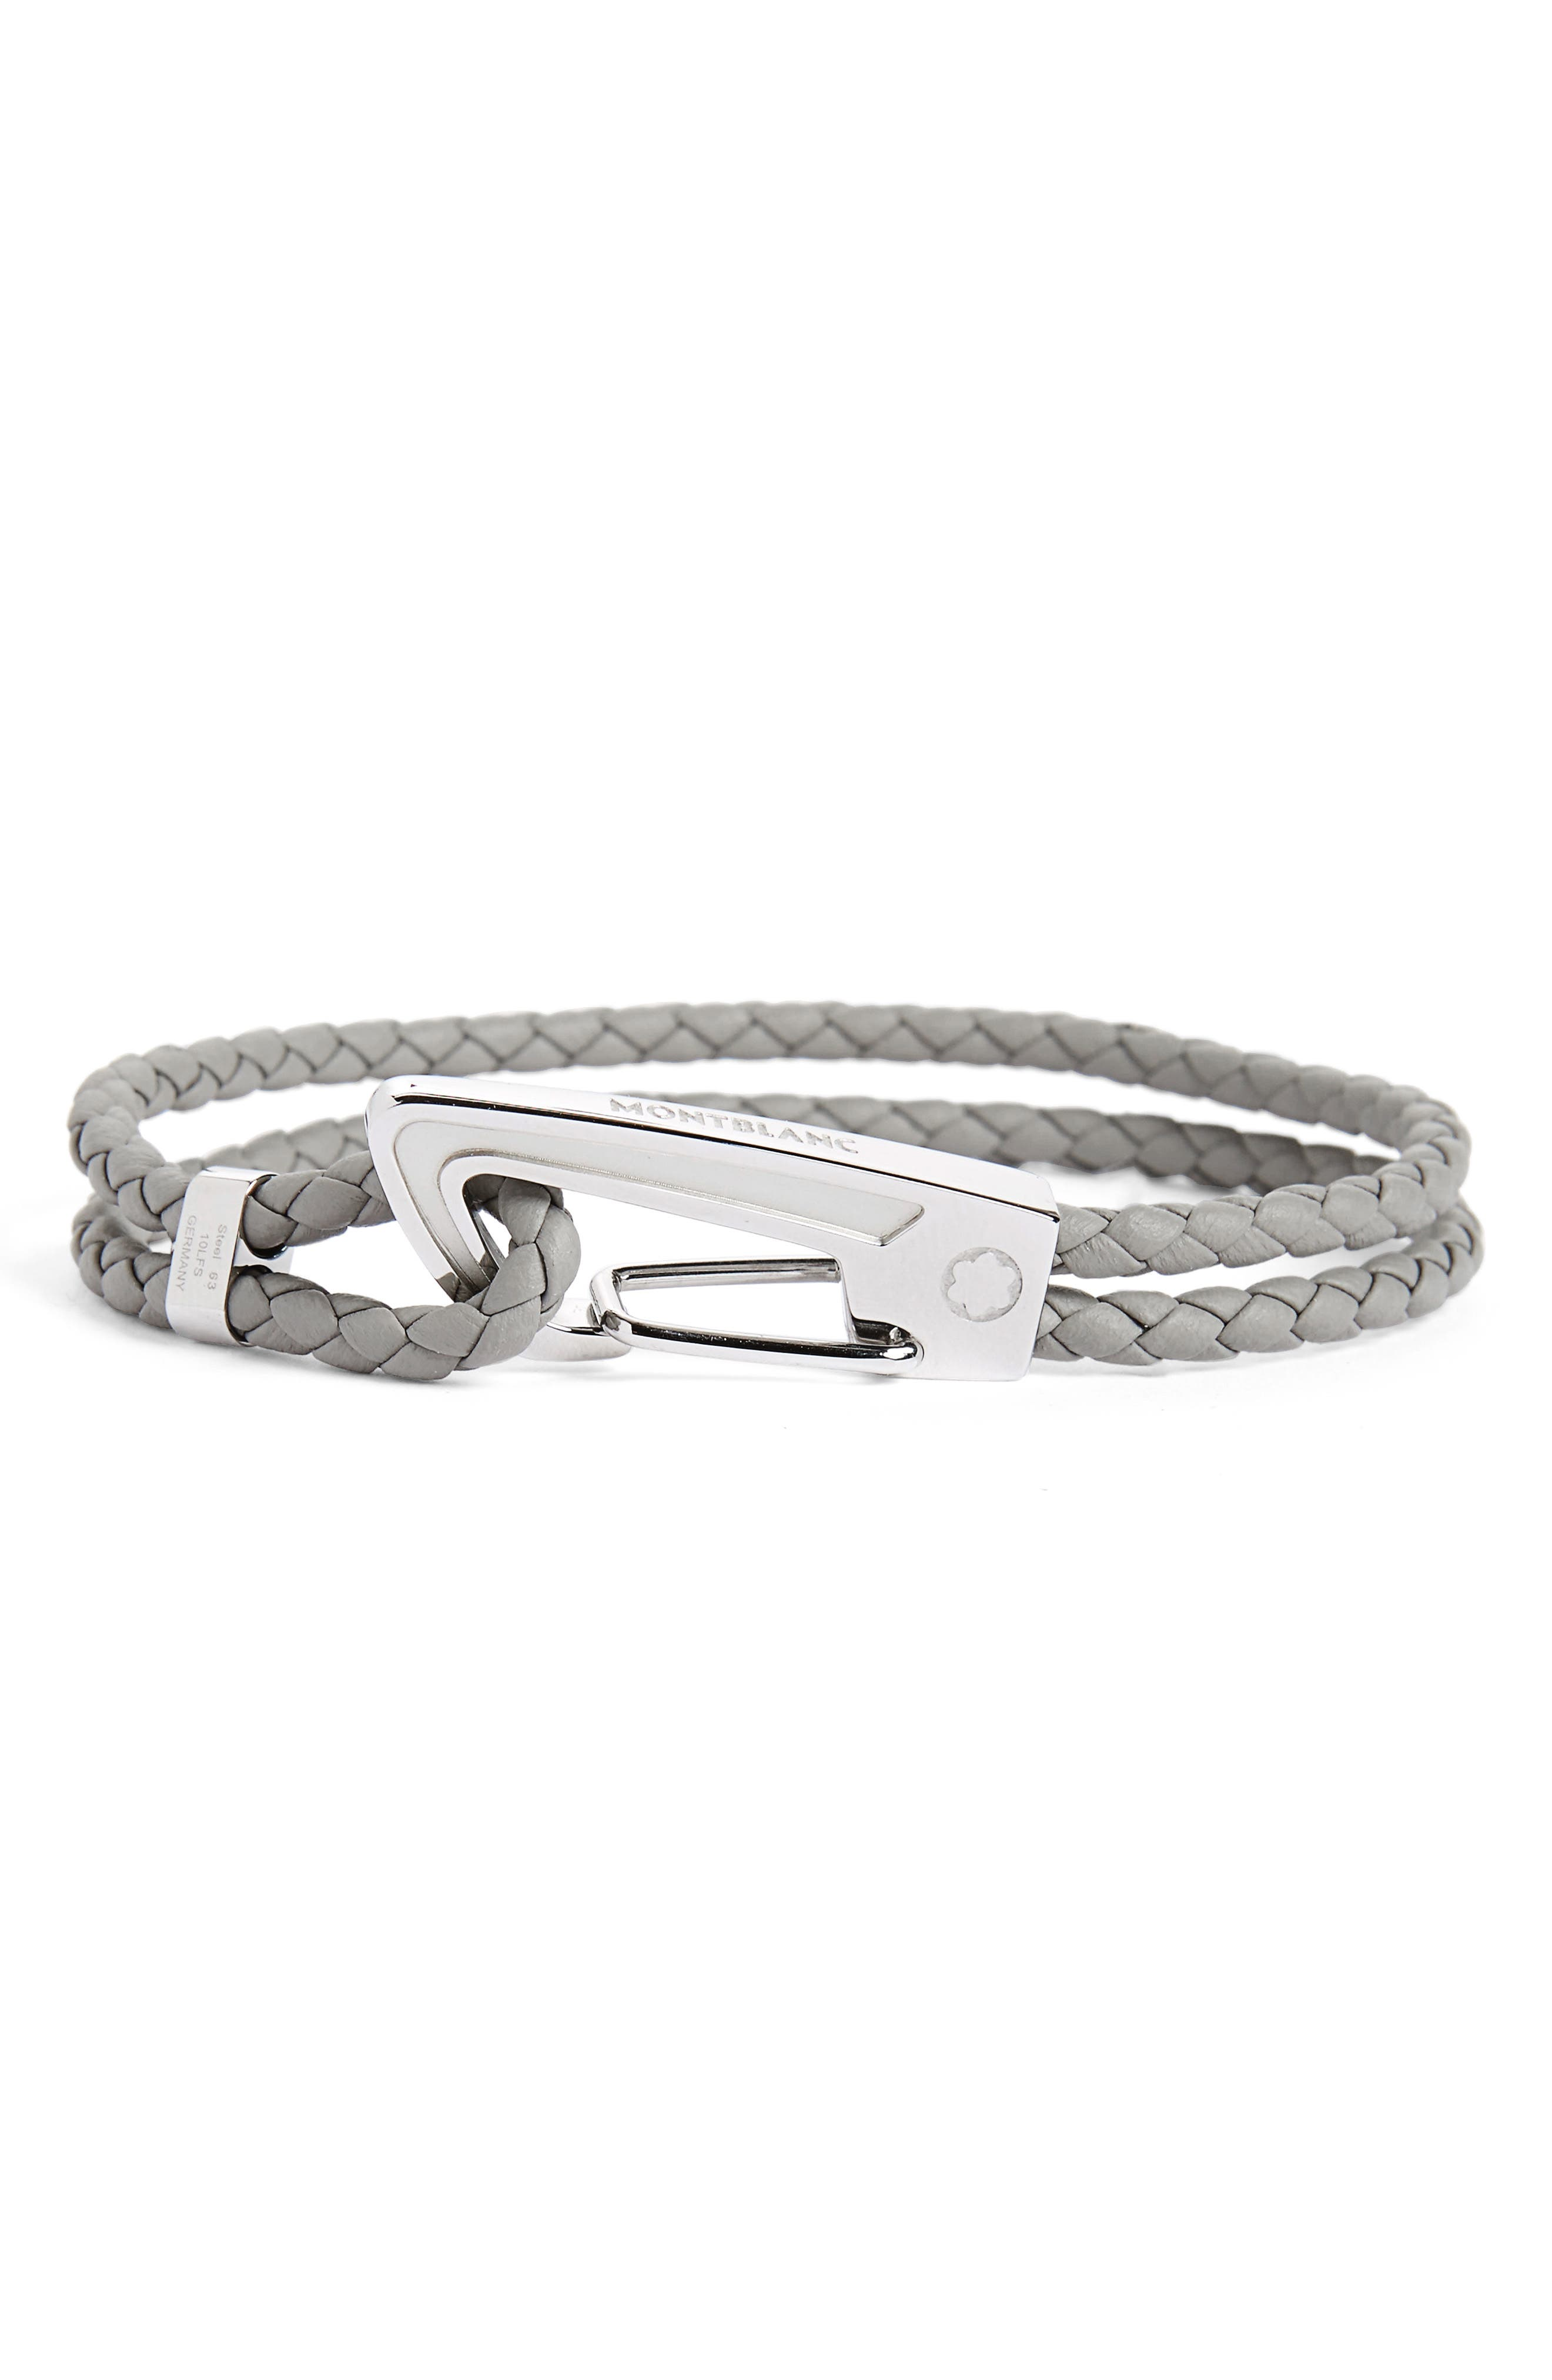 MONTBLANC Braided Leather Bracelet, Main, color, GRAY